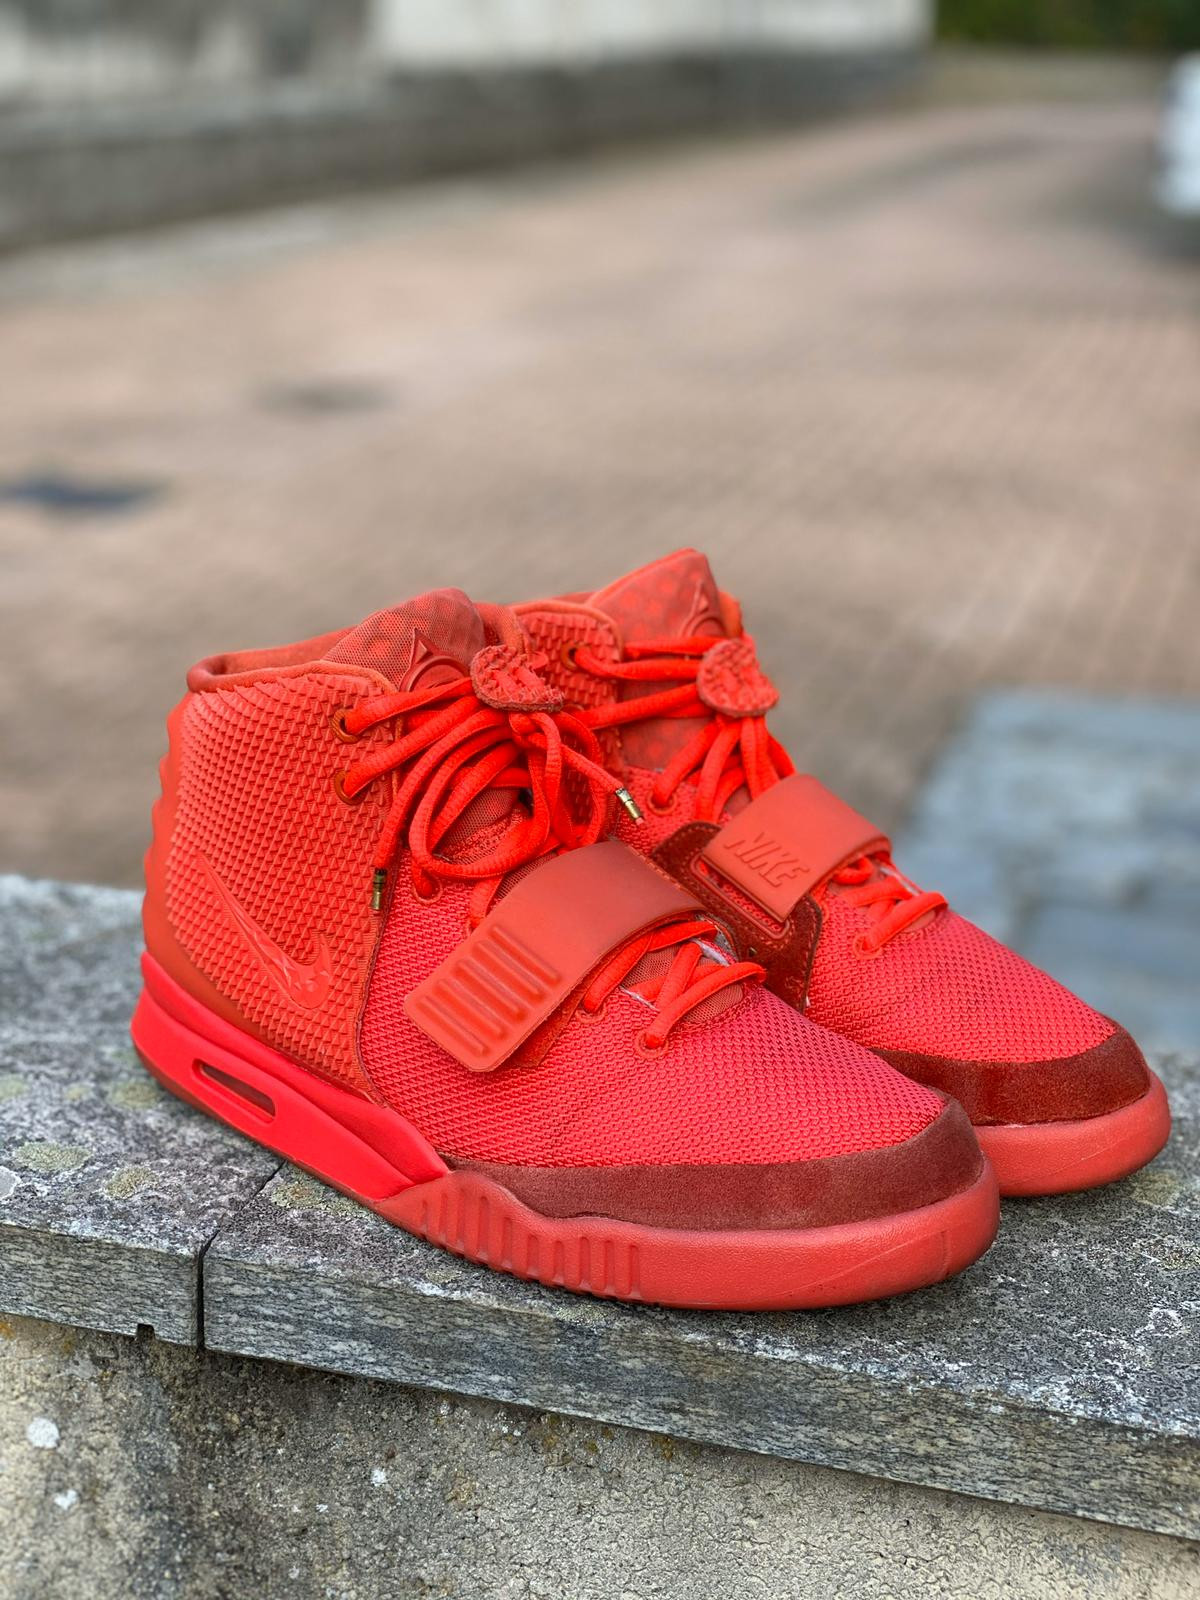 Nike Air Yeezy Red October